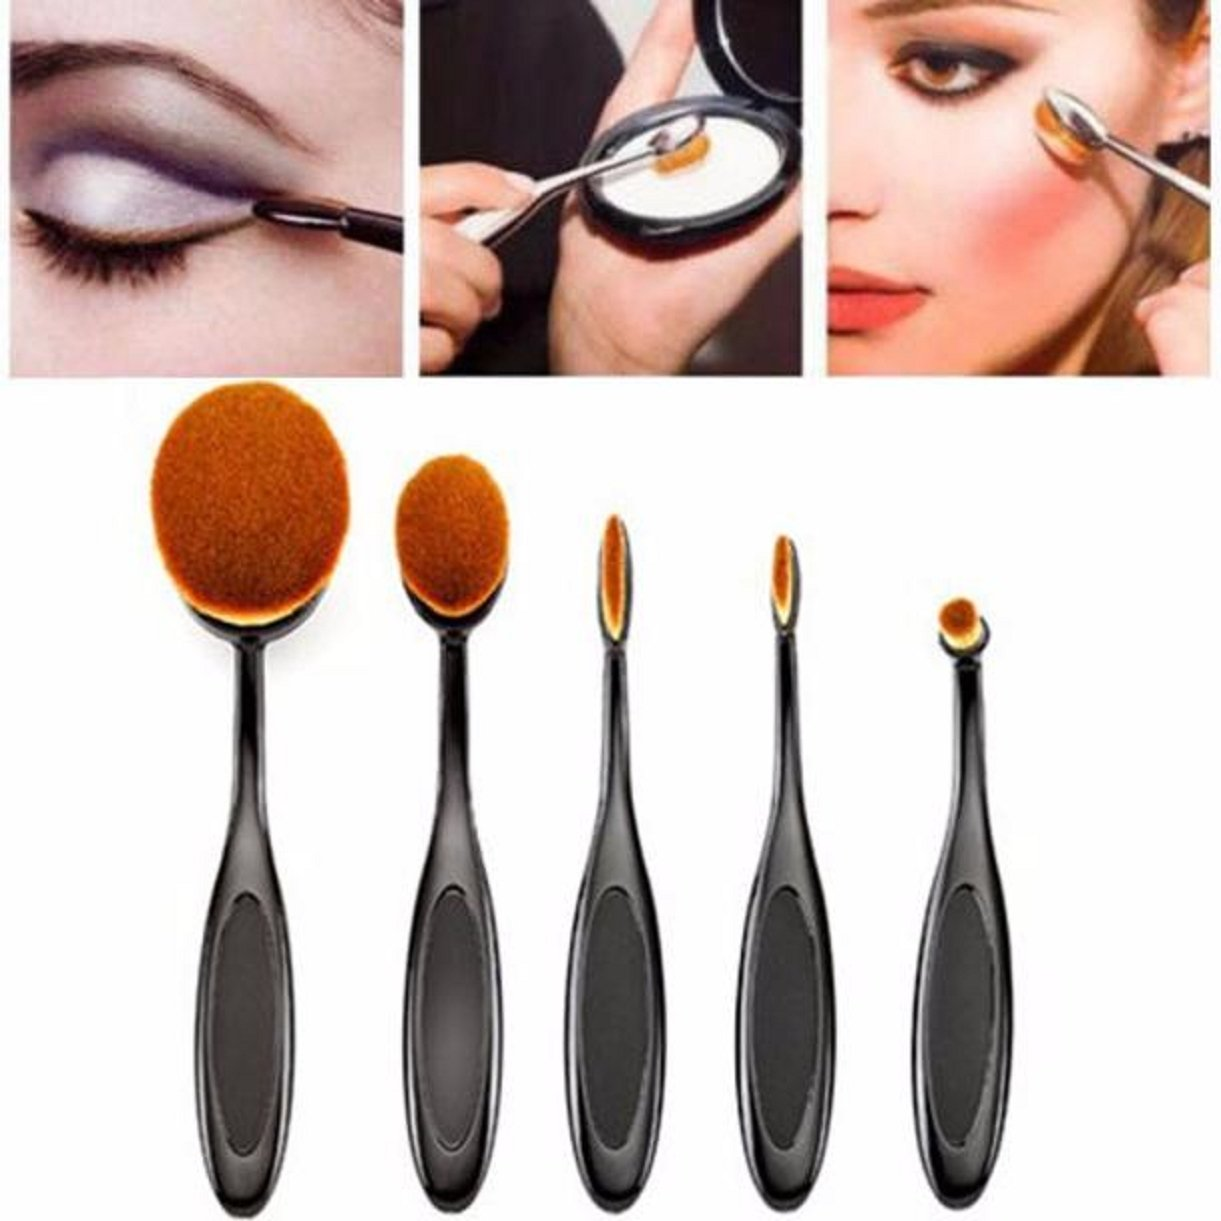 Lookatool 2016 High Quality 5pcs Soft Oval Foundation Makeup Brush Sets Powder Blusher Toothbrush Curve Cosmetic Makeup Brushes Tool (5PC Toothbrush Puff Brushes)